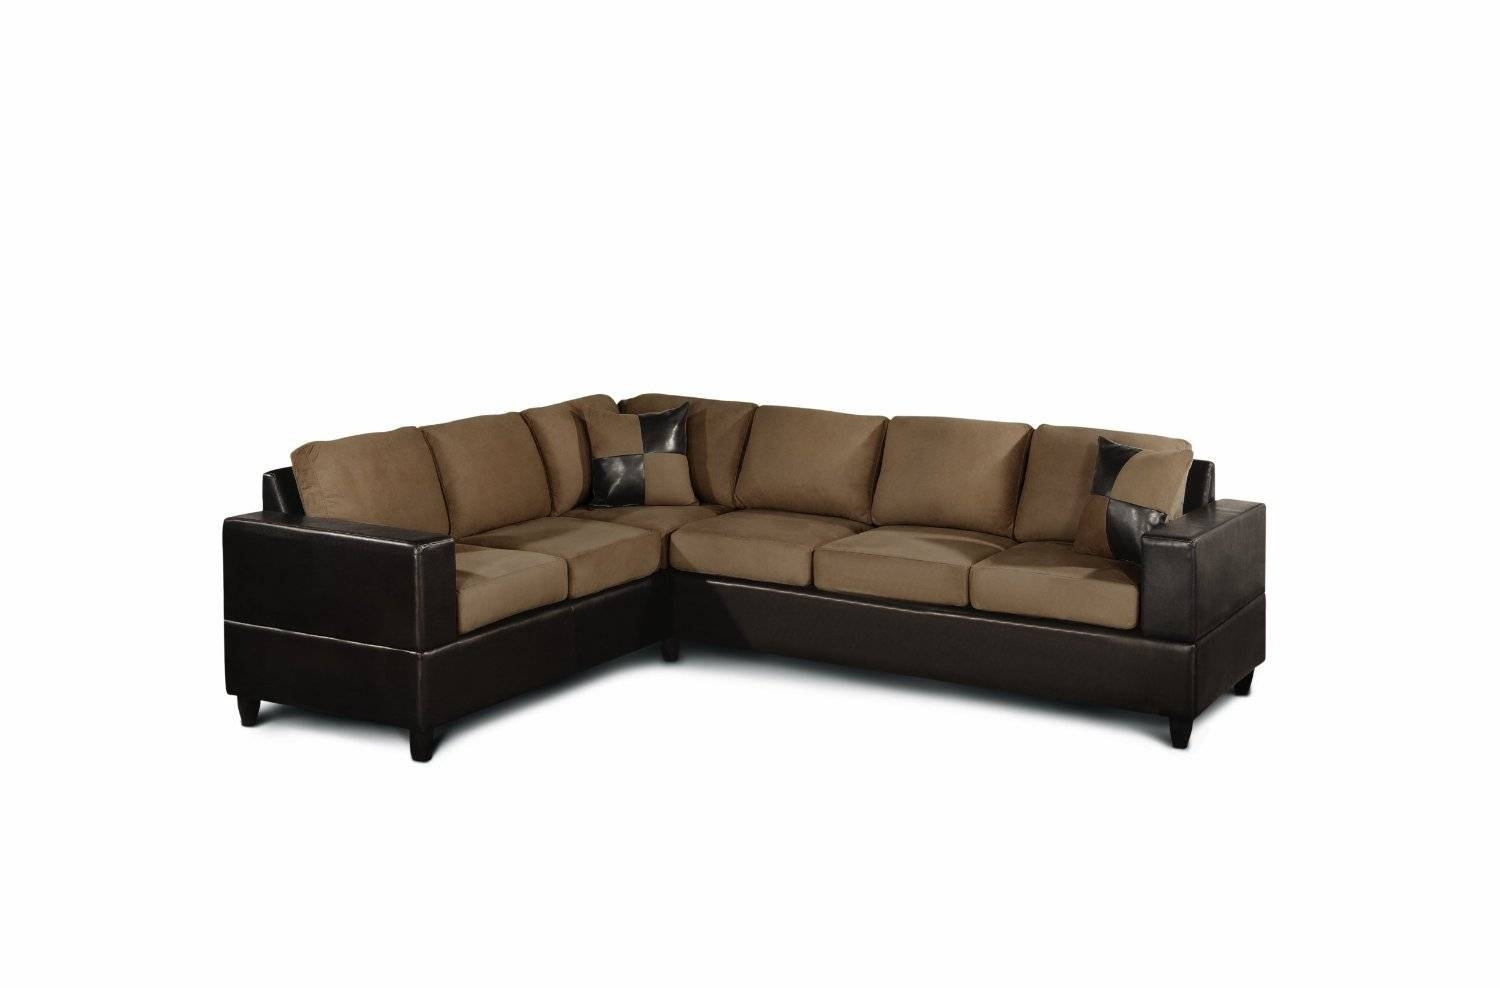 L Shaped Couches | Home Designlarizza within Small L-Shaped Sofas (Image 7 of 15)